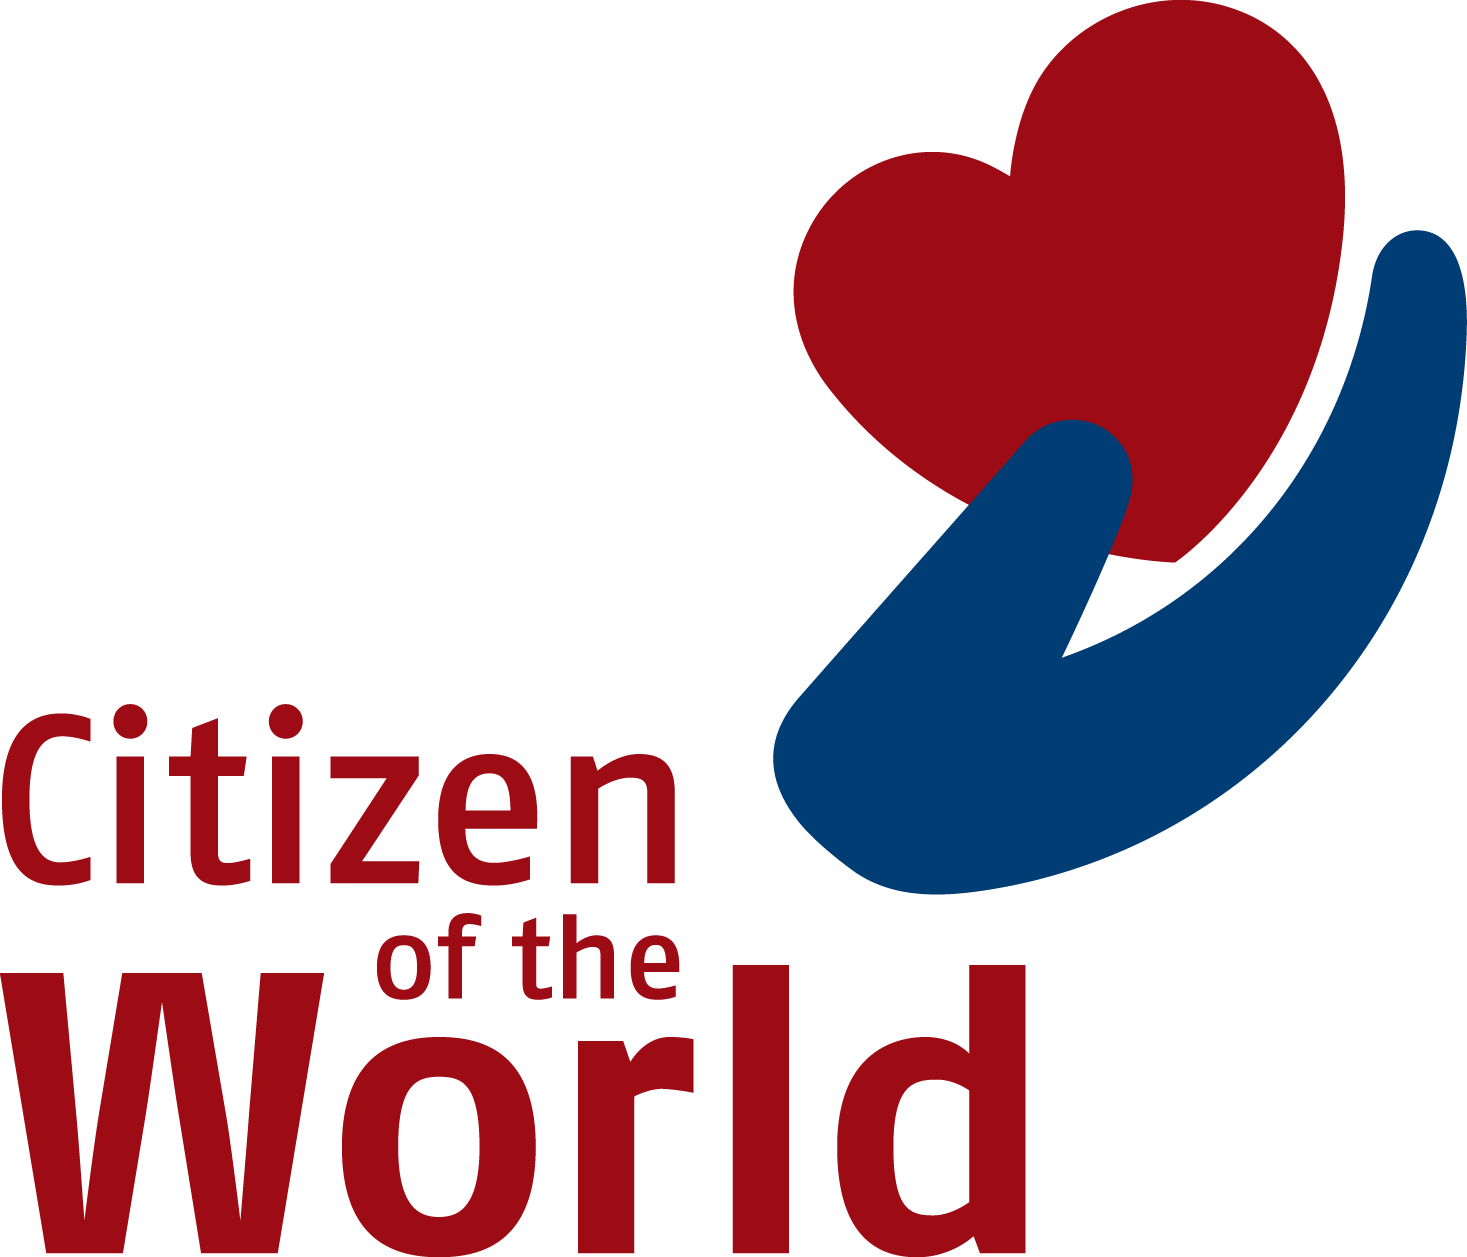 citizen_of_the_world